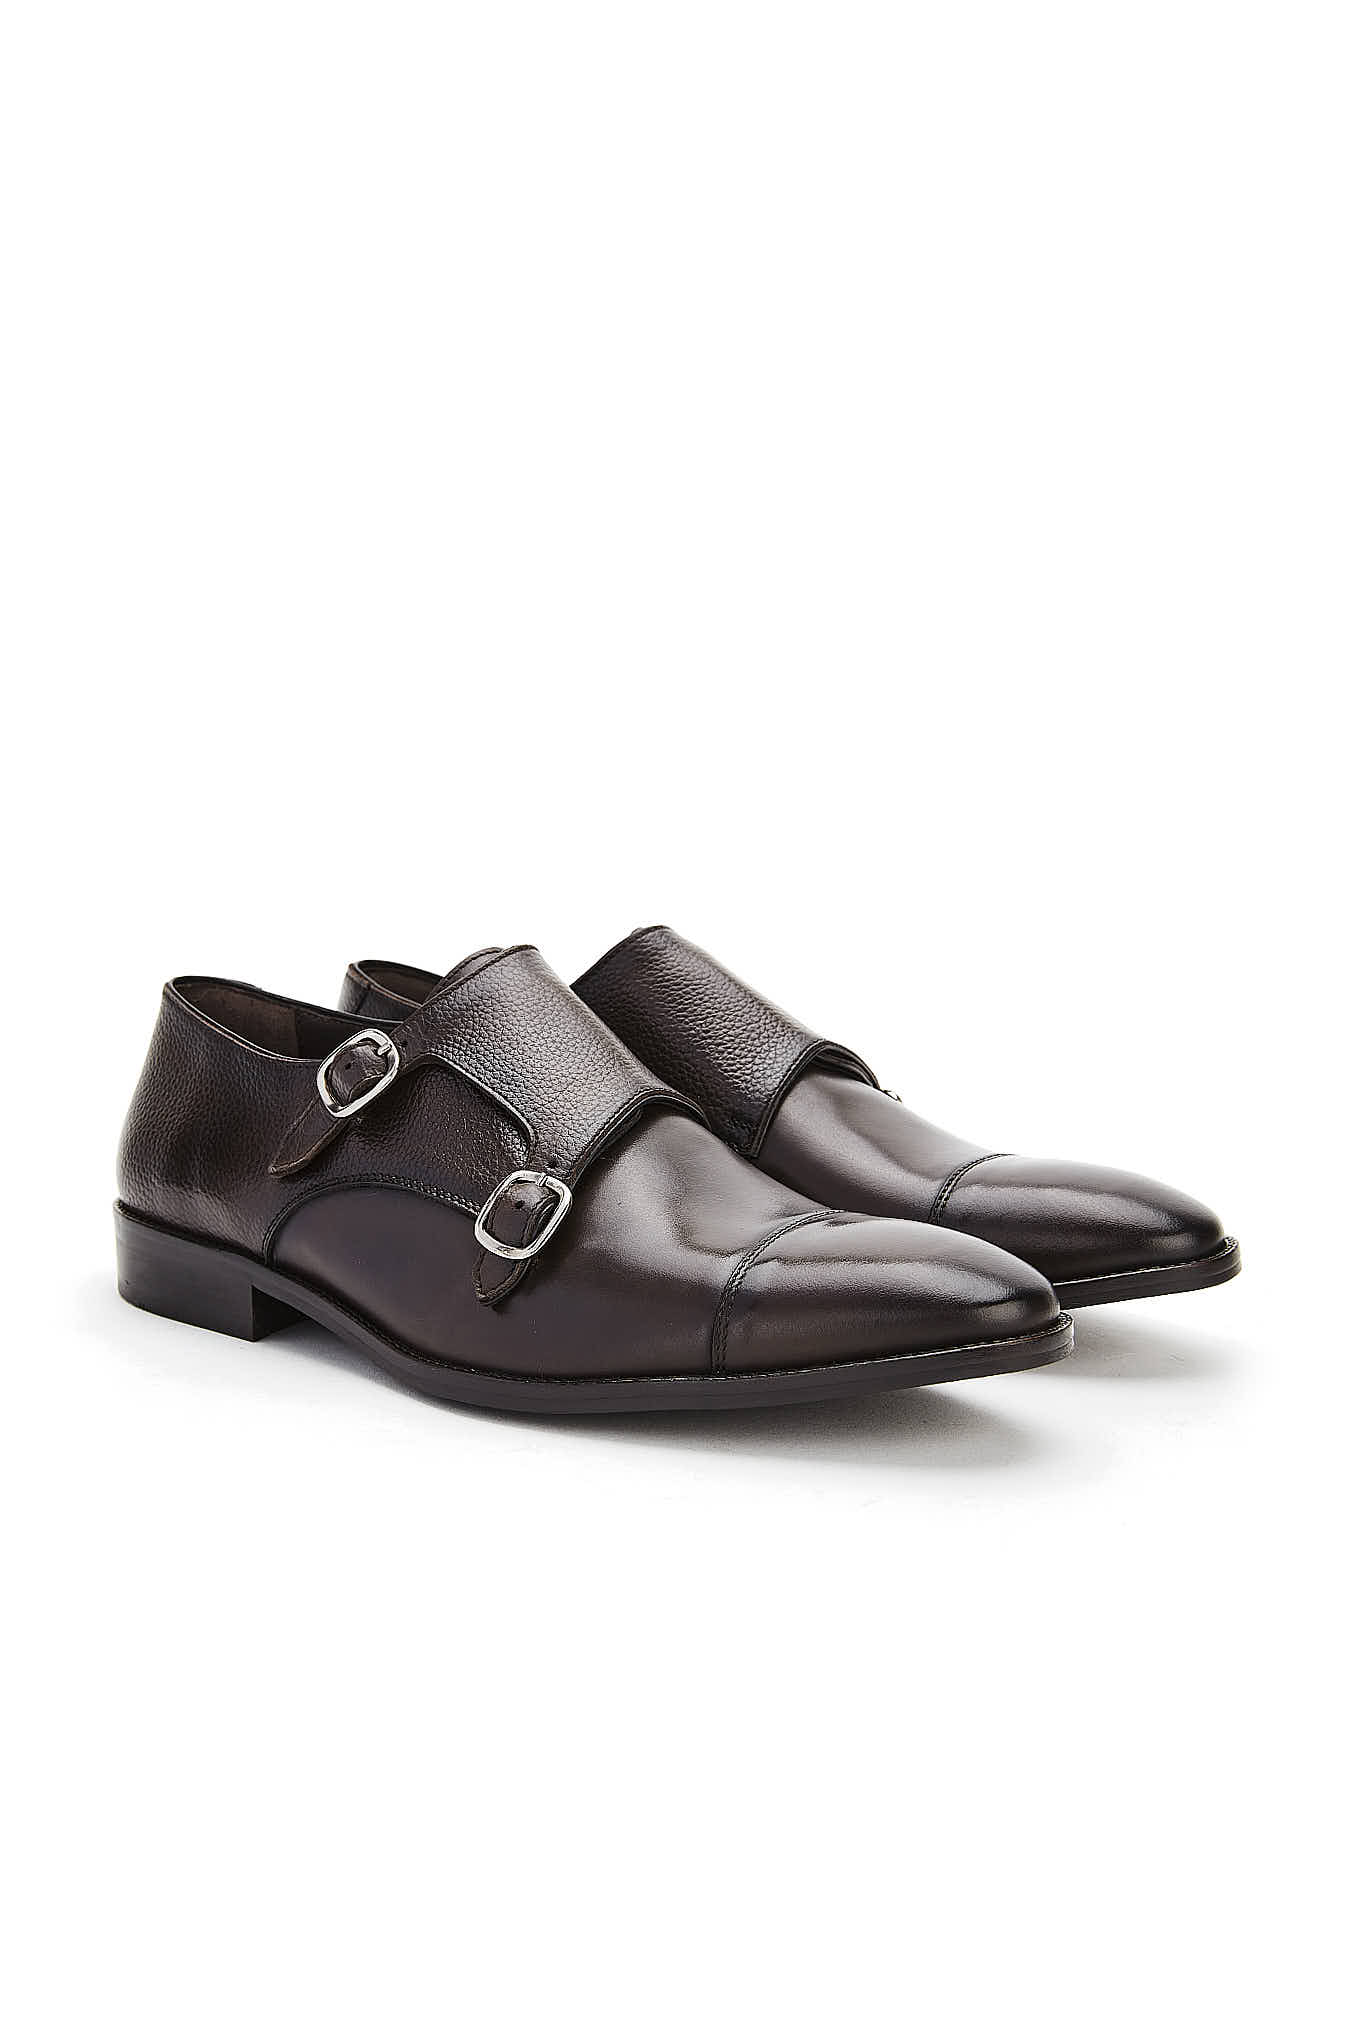 Shoes Chocolate Casual Man